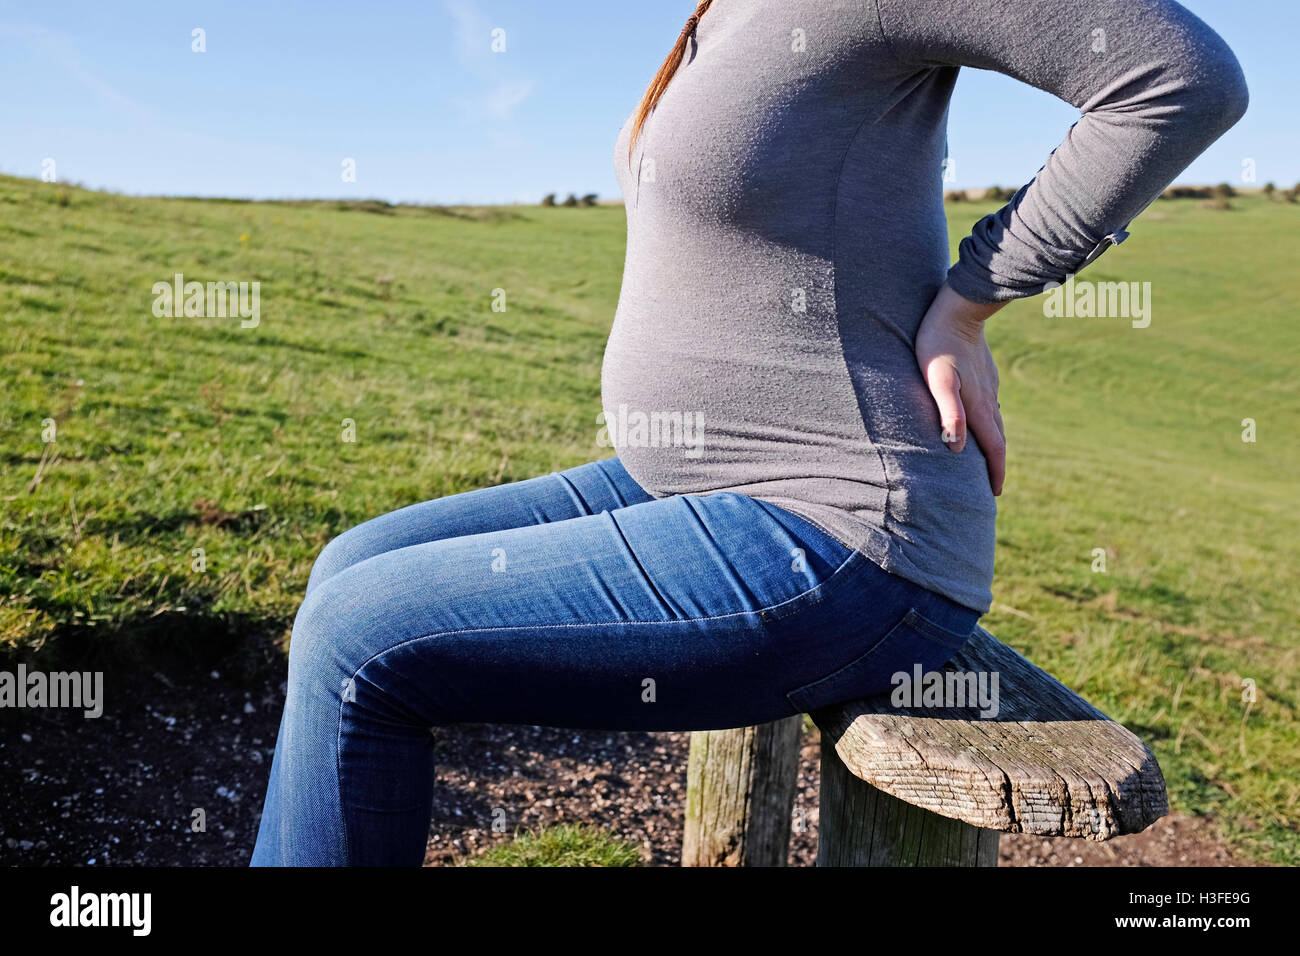 Young pregnant woman in her 20s takes a rest on park bench as she holds her back which aches - Stock Image